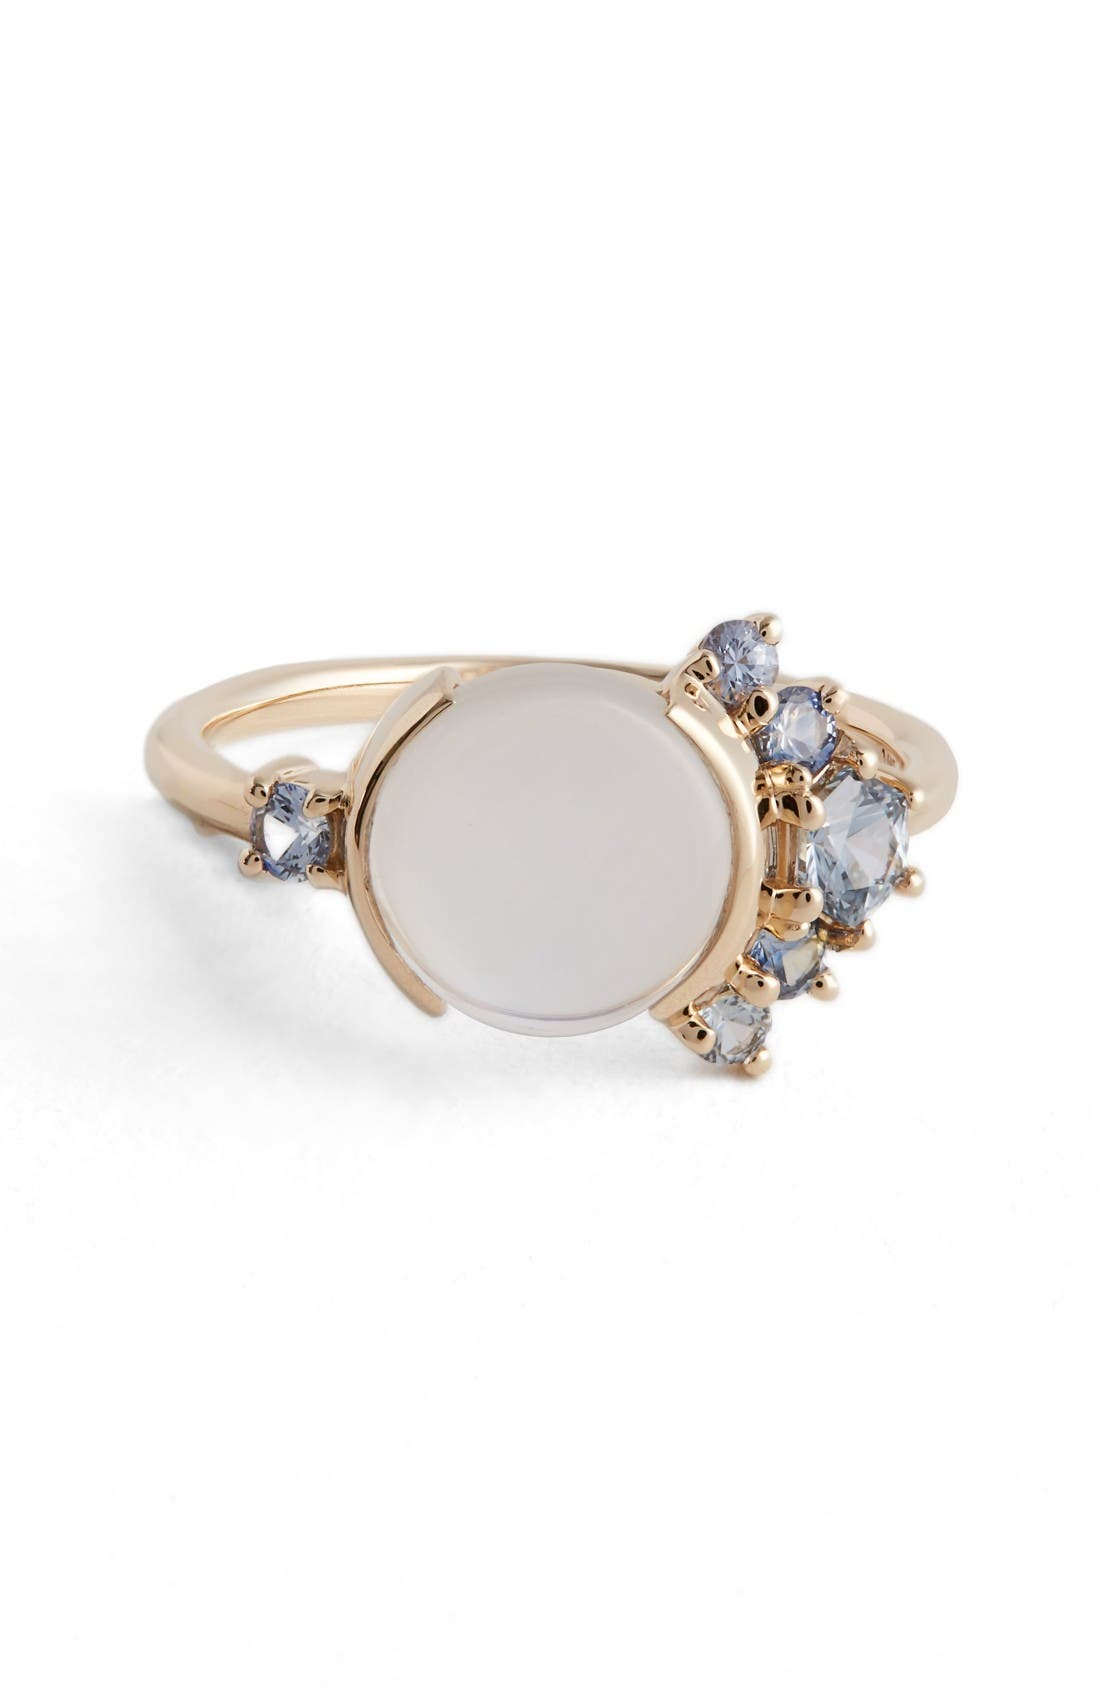 Moonstone & Sapphire Ring,                         Main,                         color, Yellow White